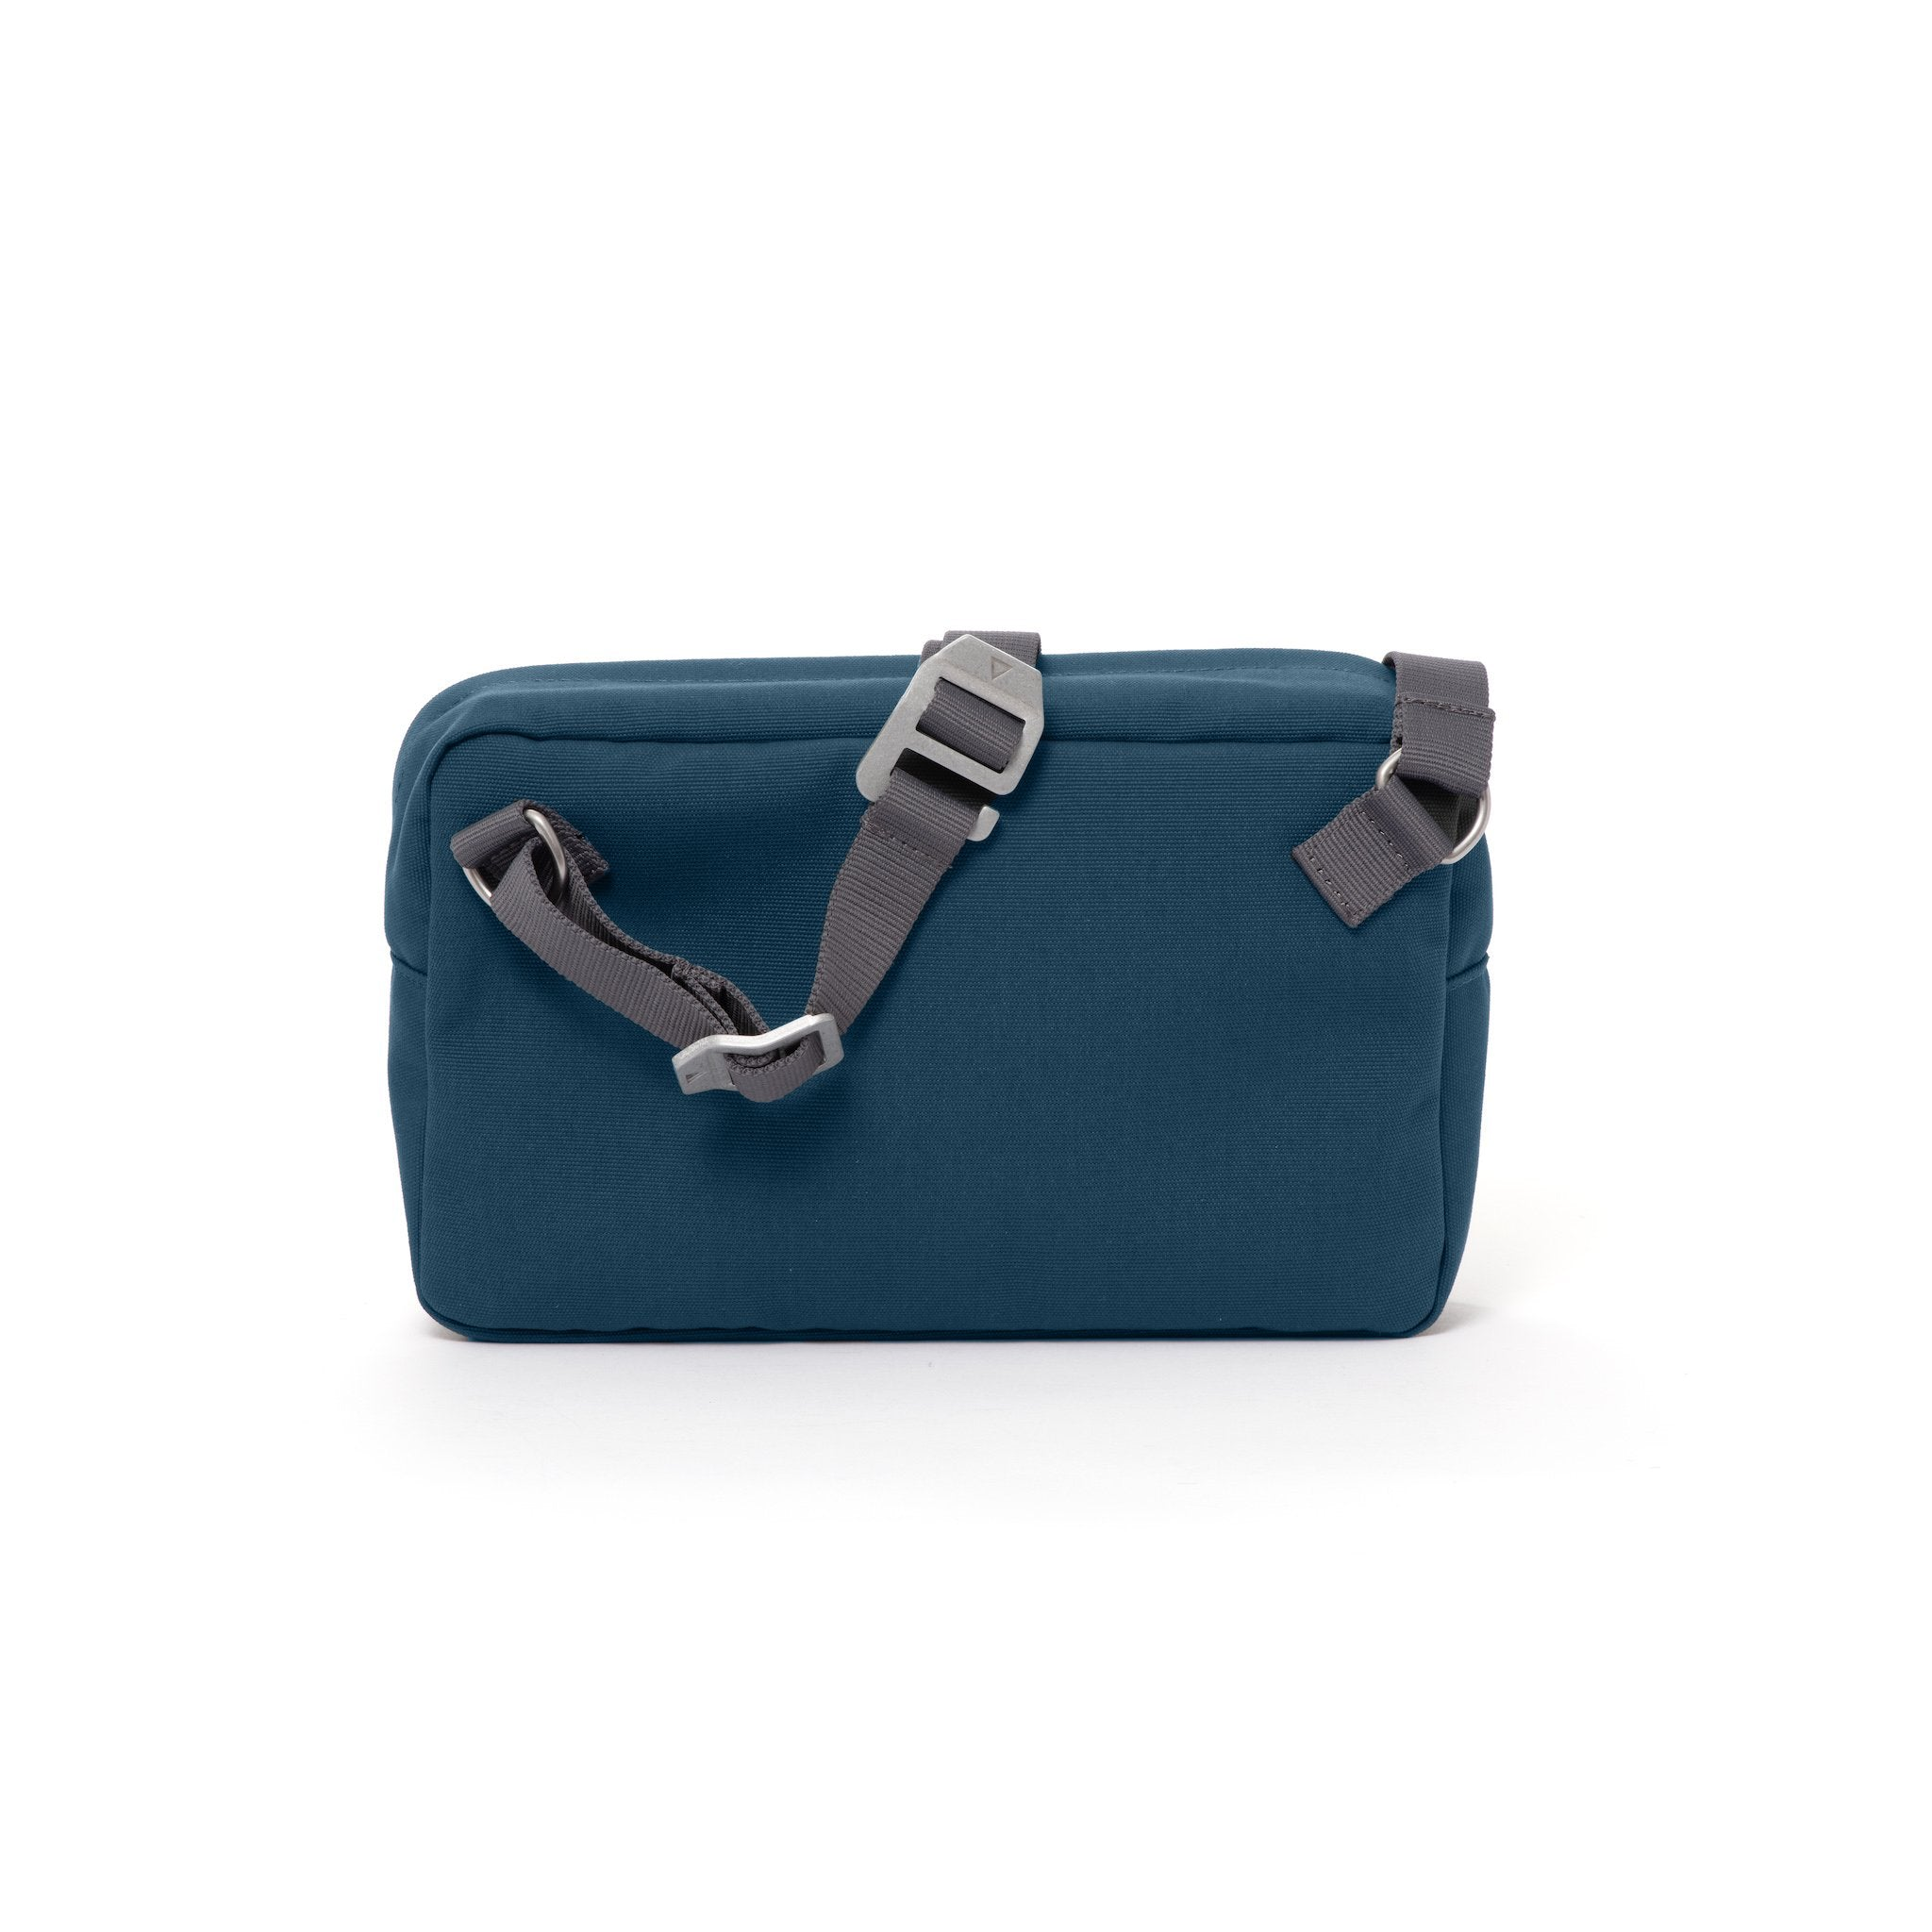 Blue shoulder bag with webbing strap and aluminium buckles.